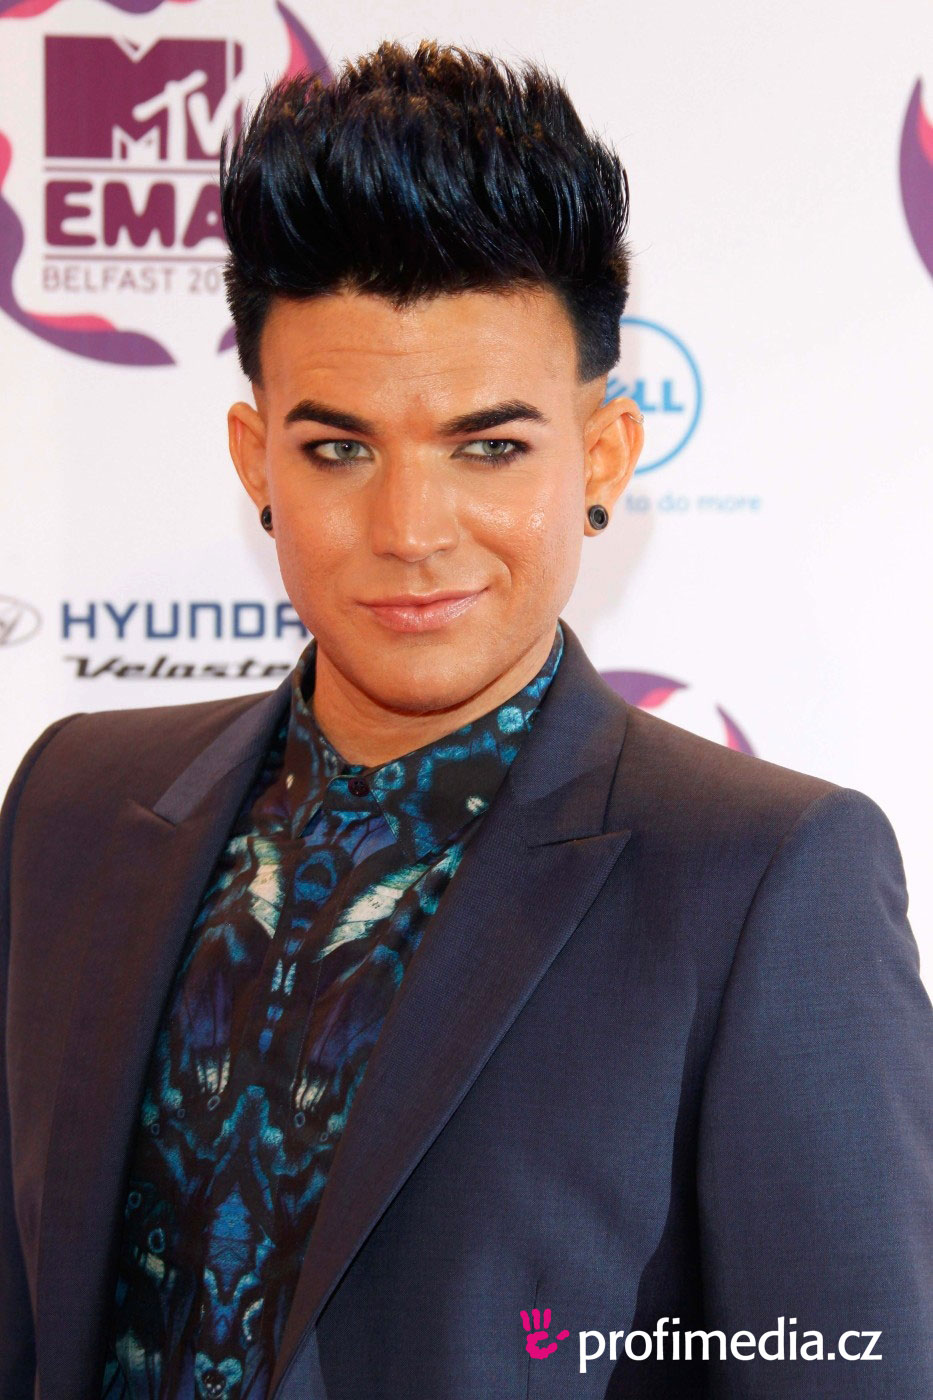 Terrific Adam Lambert Hairstyle Easyhairstyler Short Hairstyles For Black Women Fulllsitofus